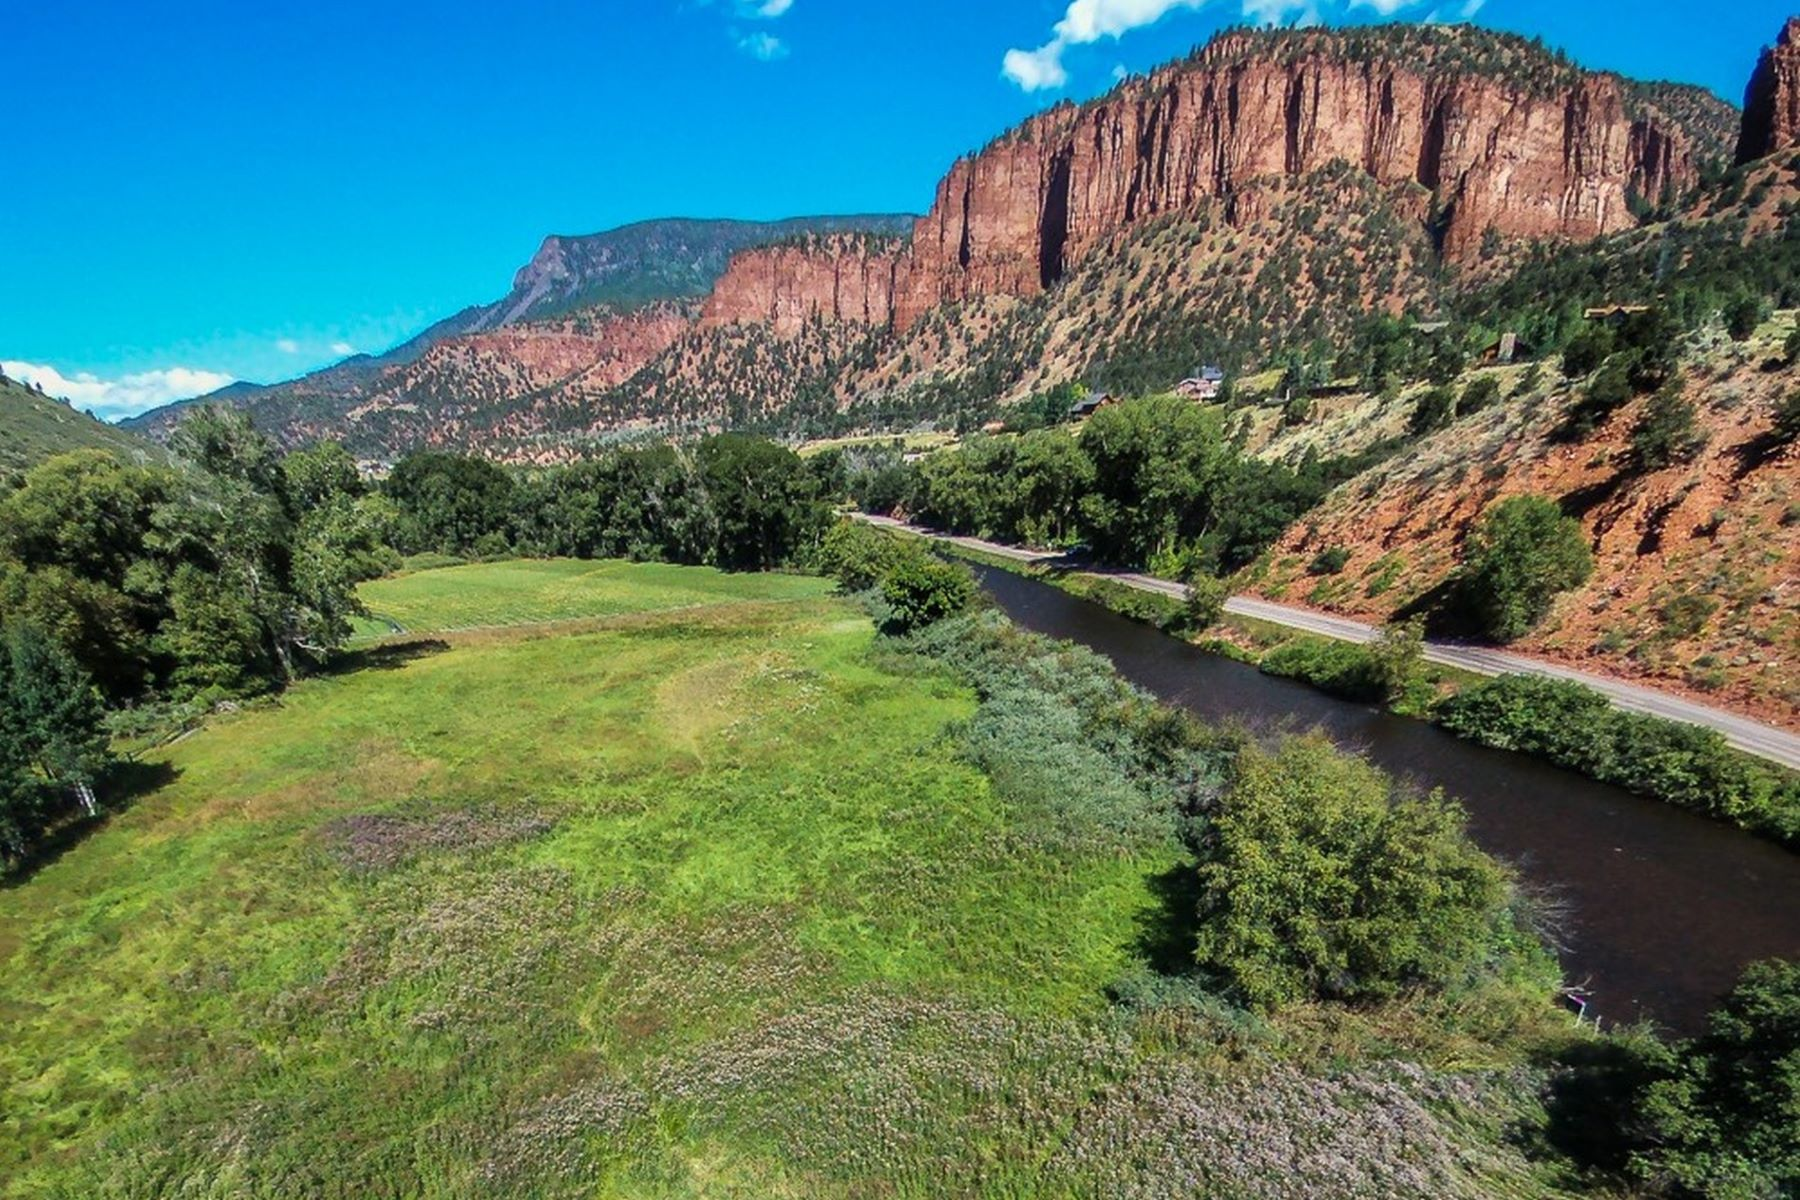 Land for Sale at Special Place on the Frying Pan River TBD Frying Pan Rd Basalt, Colorado 81621 United States